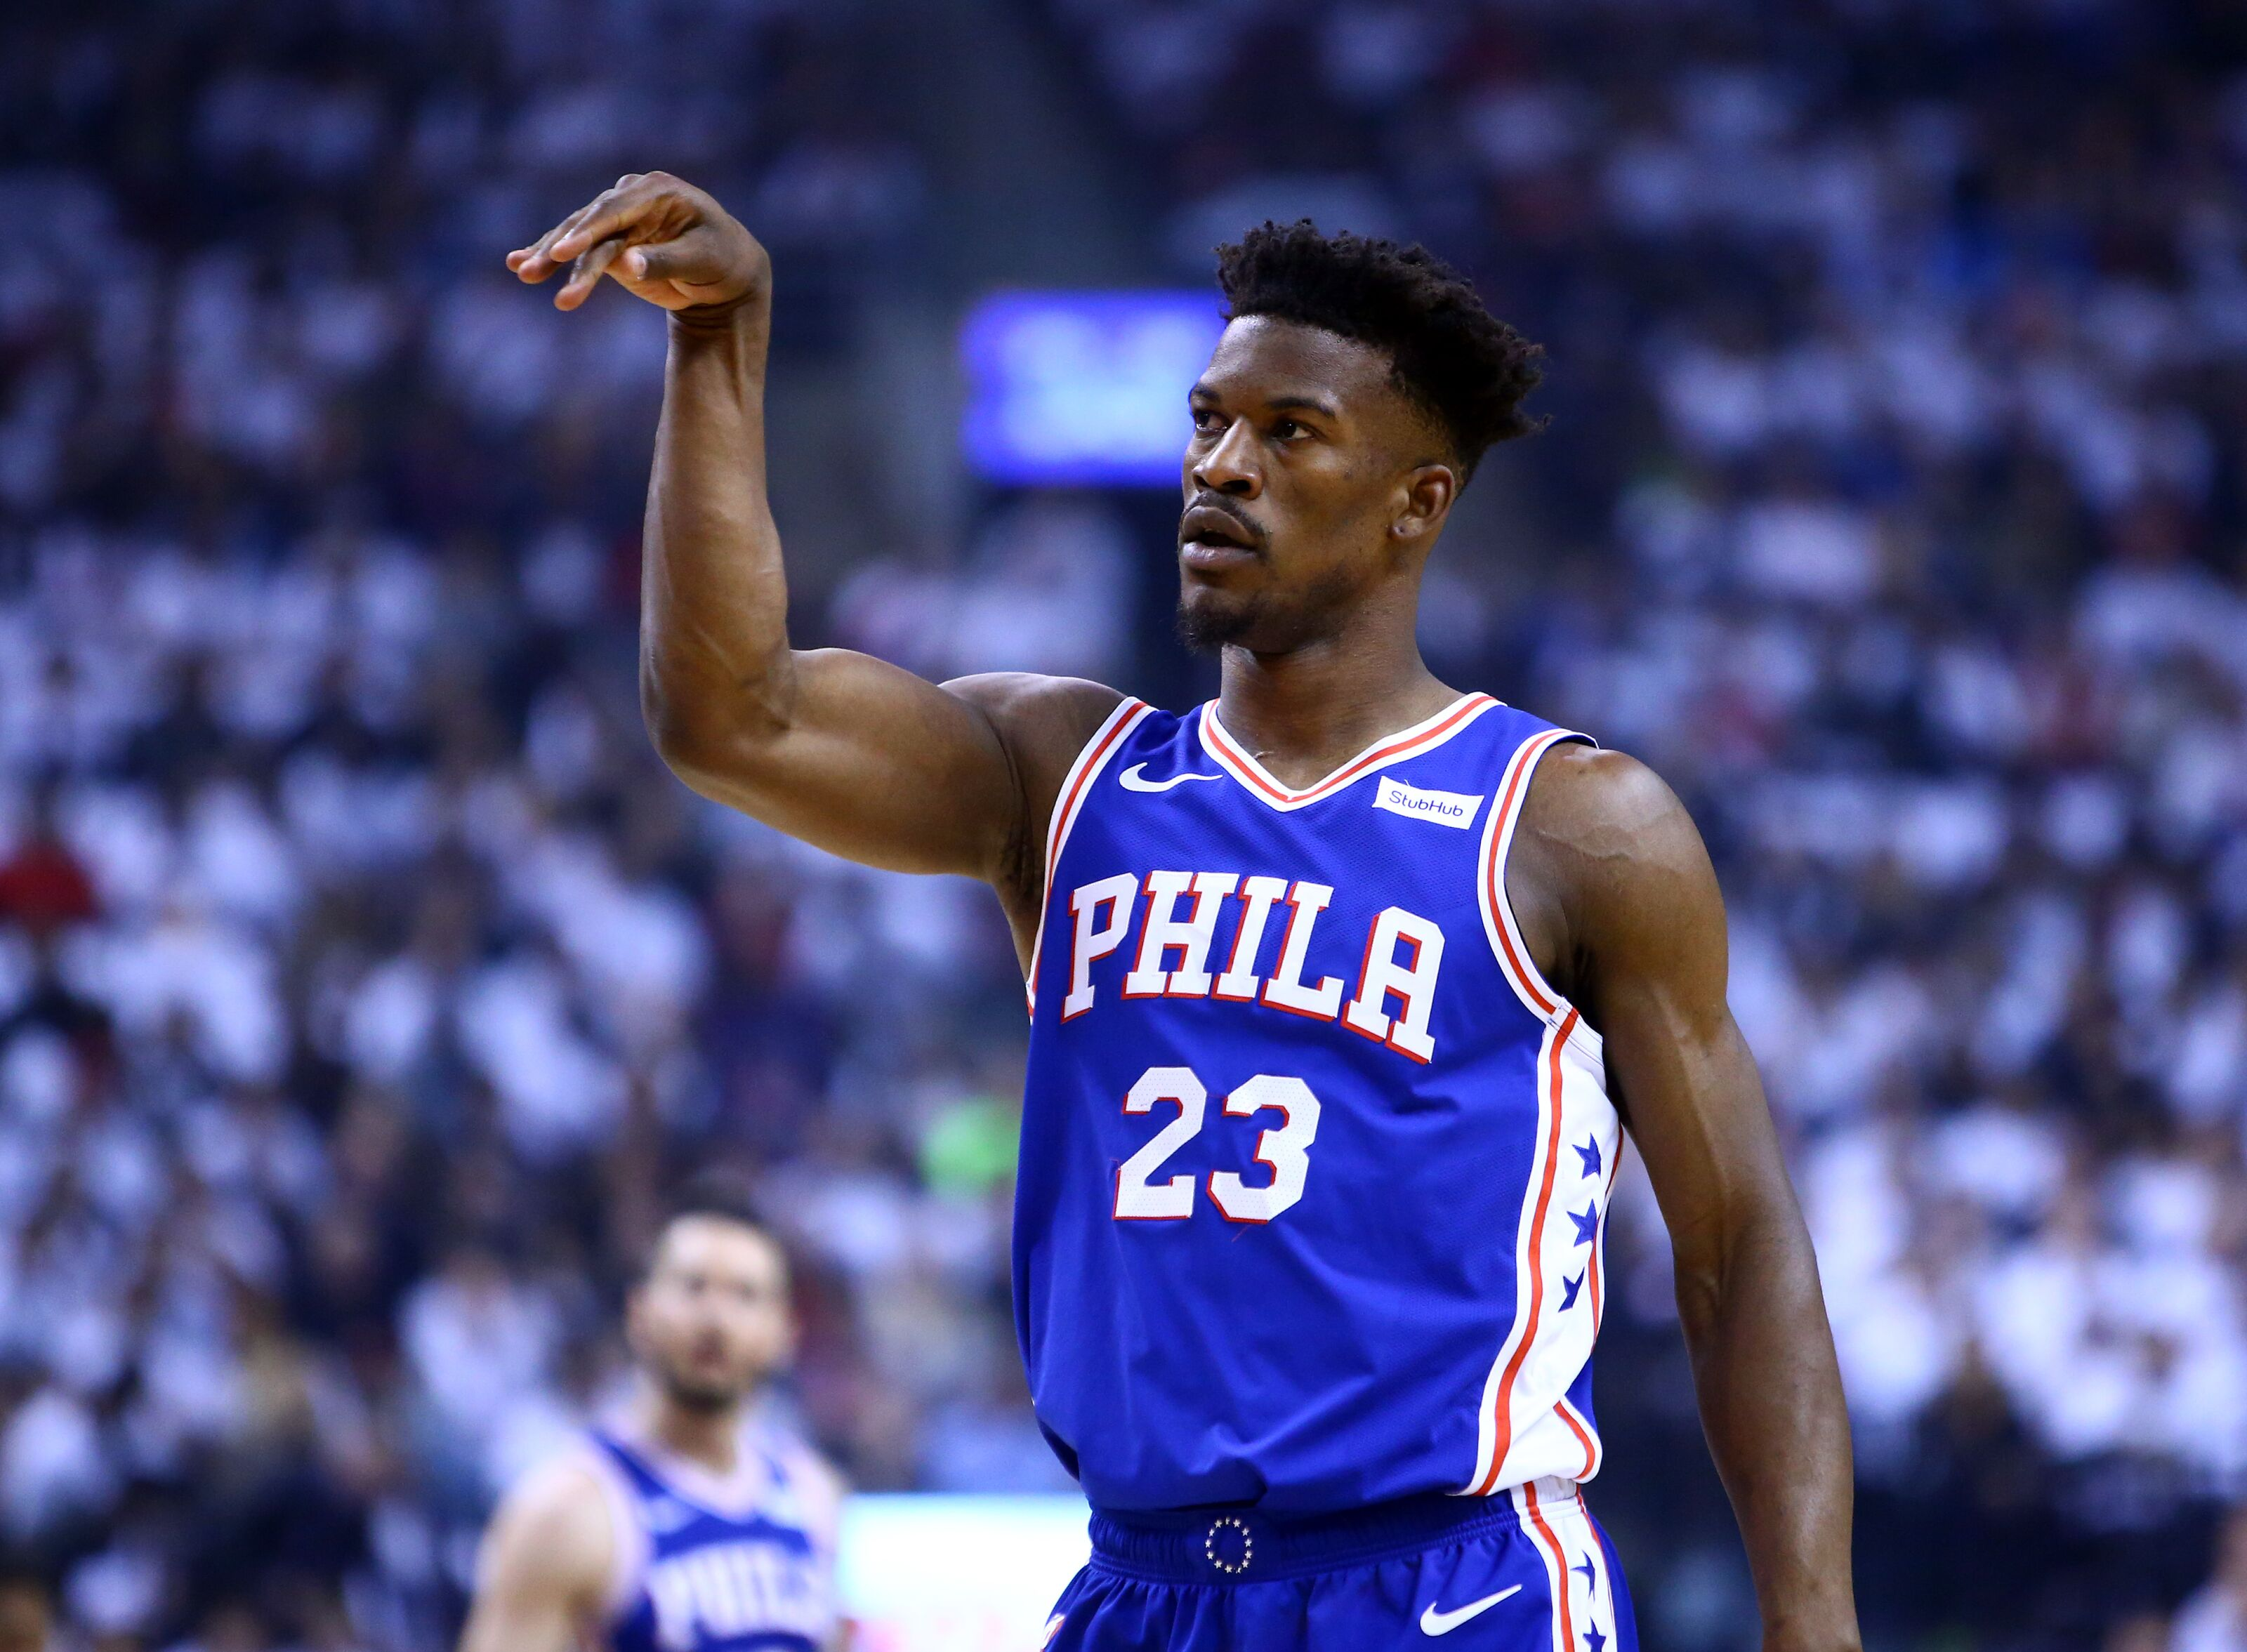 hot sale online 53277 afe57 Philadelphia 76ers: Jimmy Butler Instagram post draws mixed ...